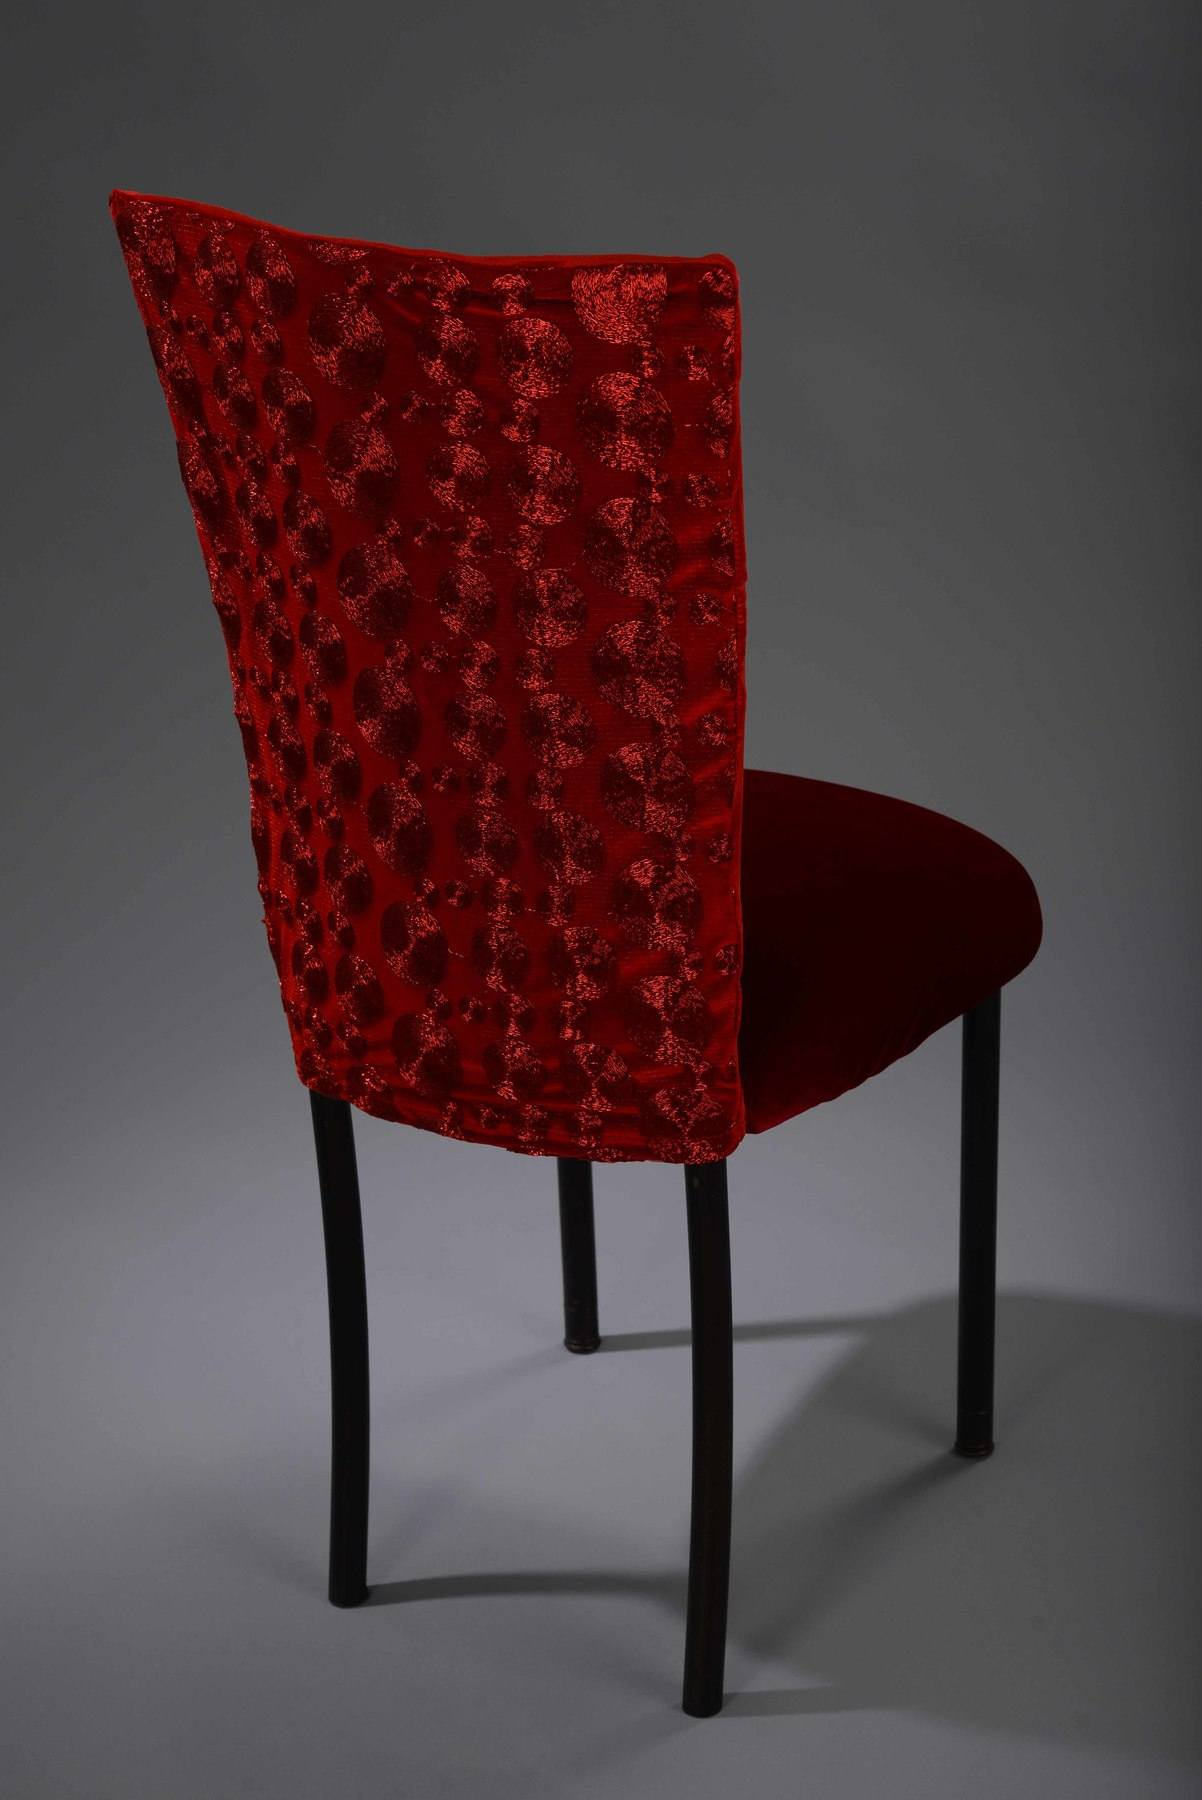 chair cover hire preston jcpenney dining covers red coin chameleon nüage designs